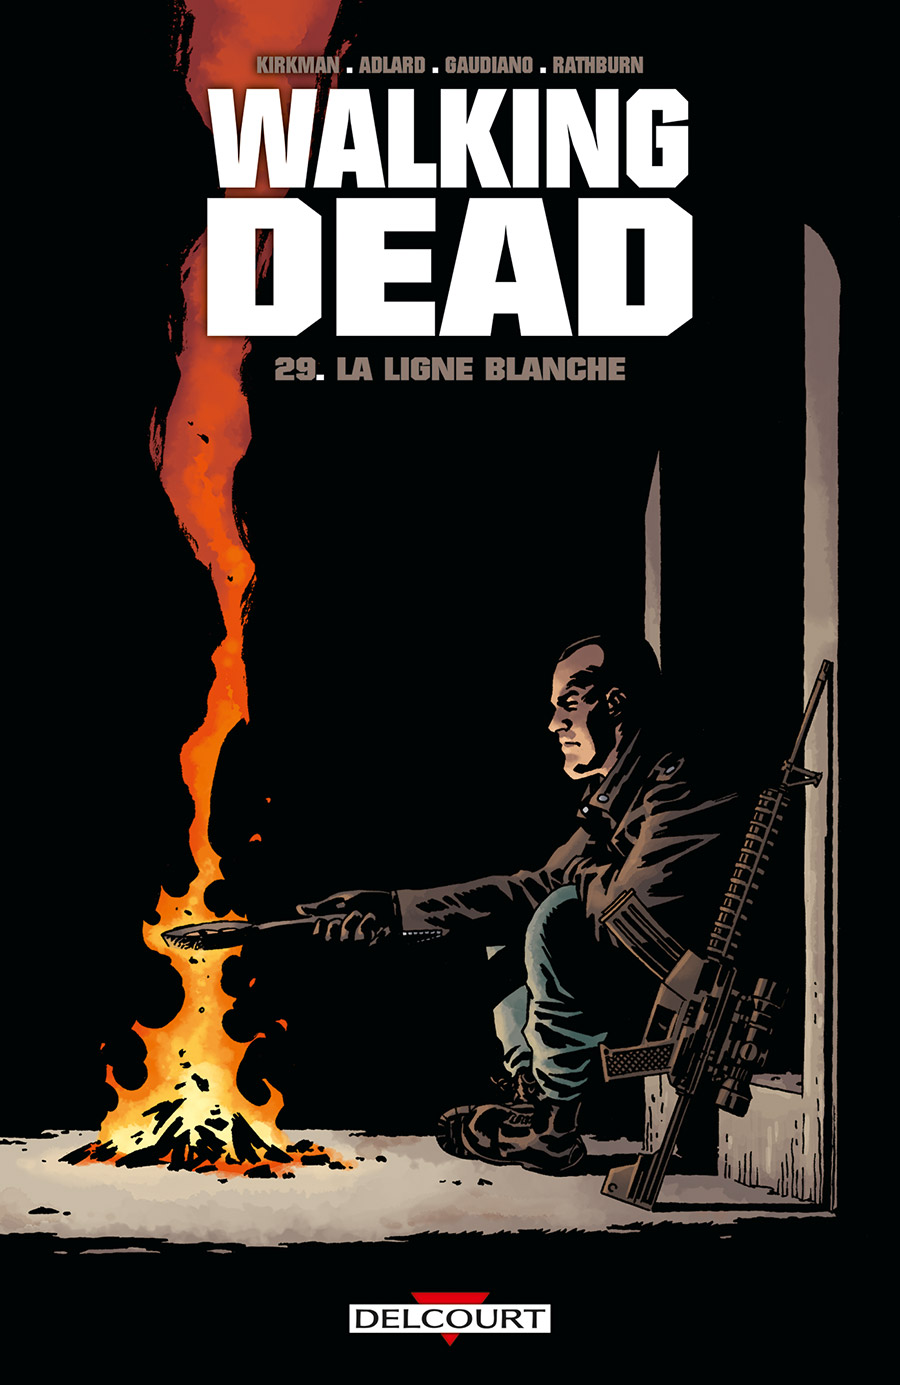 walkingdead29